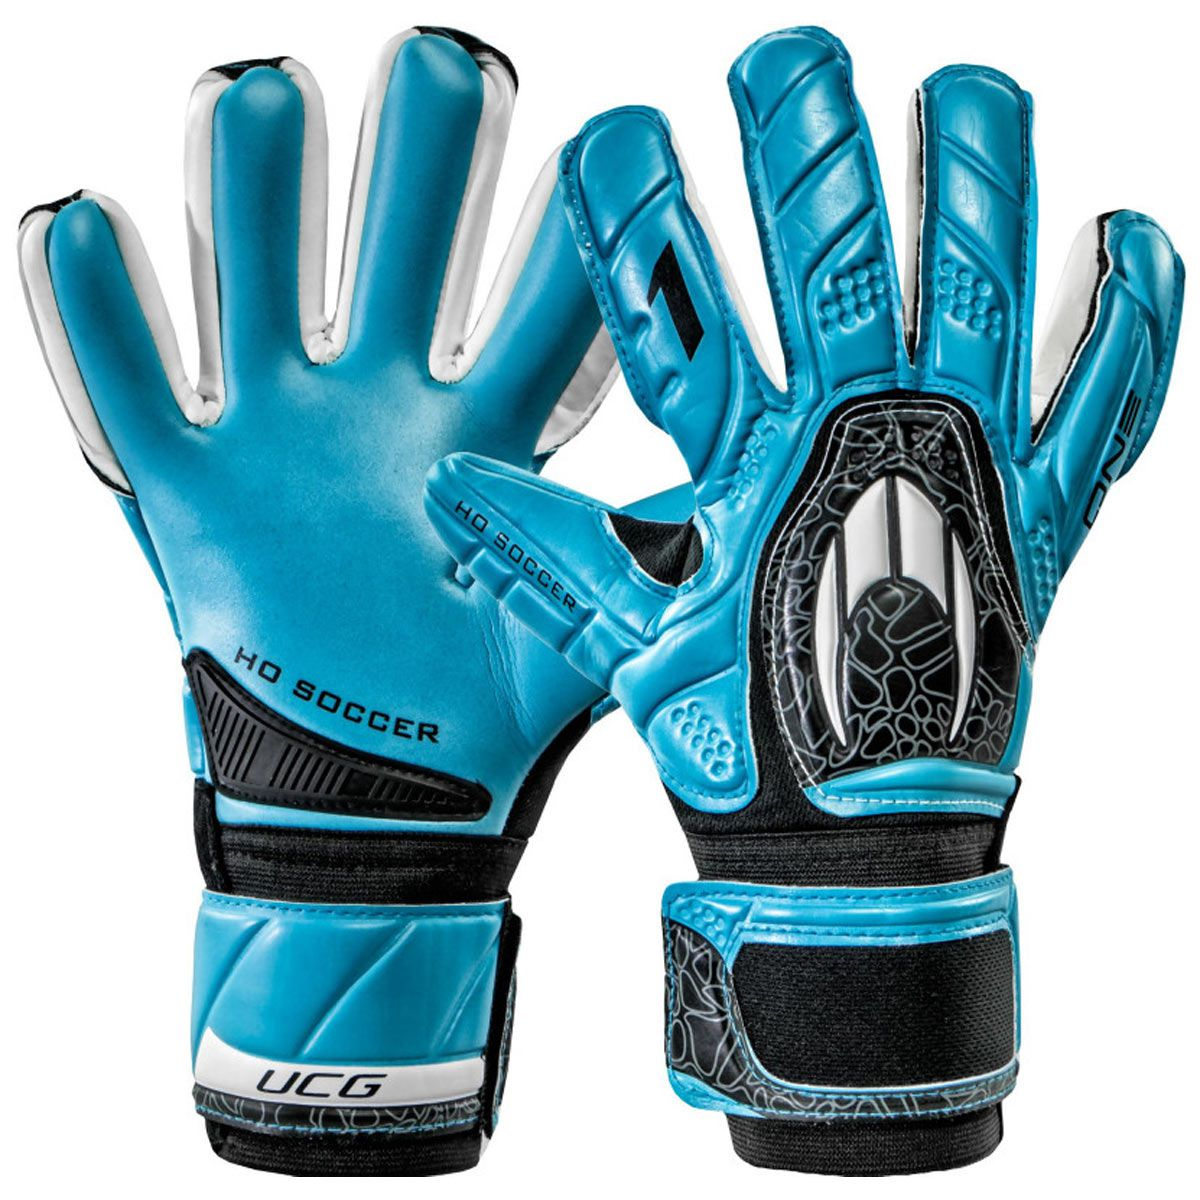 Luva Goleiro HO Soccer One Negative Blue 9138